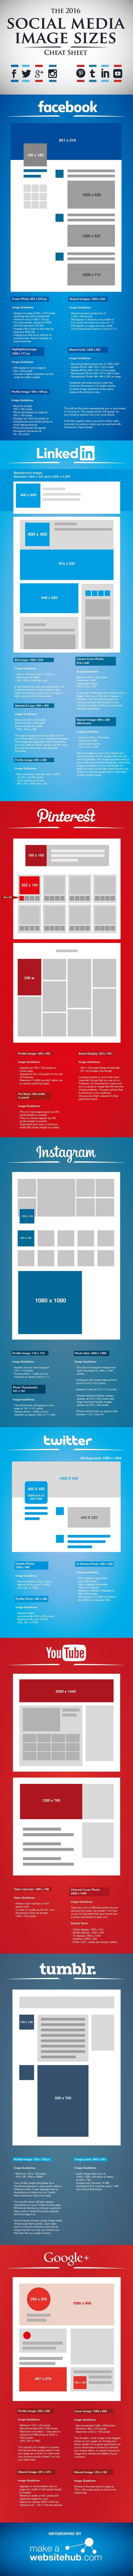 hubspot-social-image-size-guide